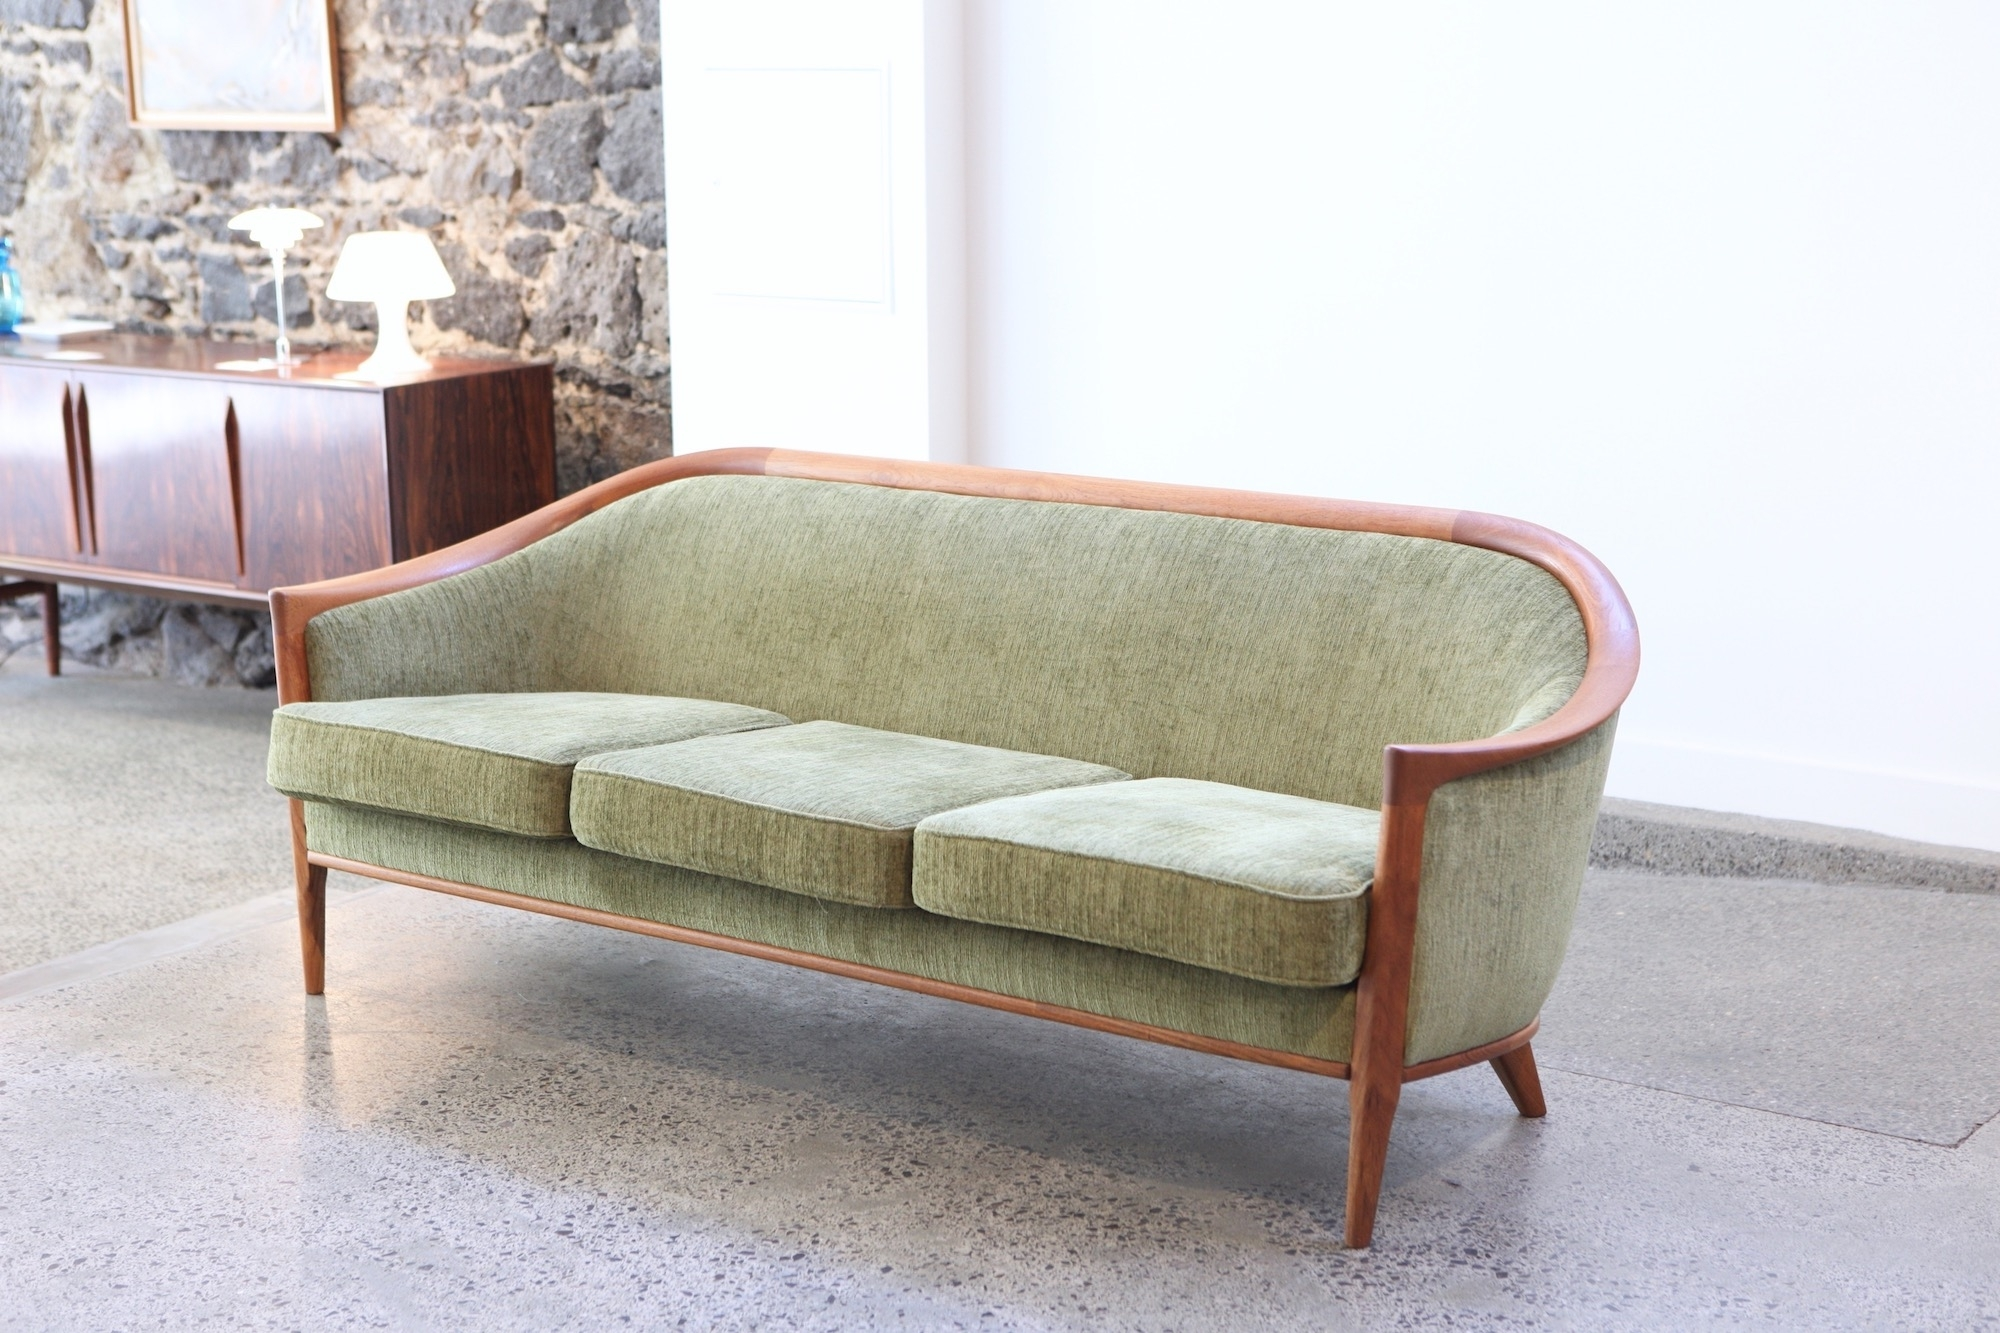 Vintage Sofas – Radar Intended For Recent Vintage Sofas (View 17 of 20)